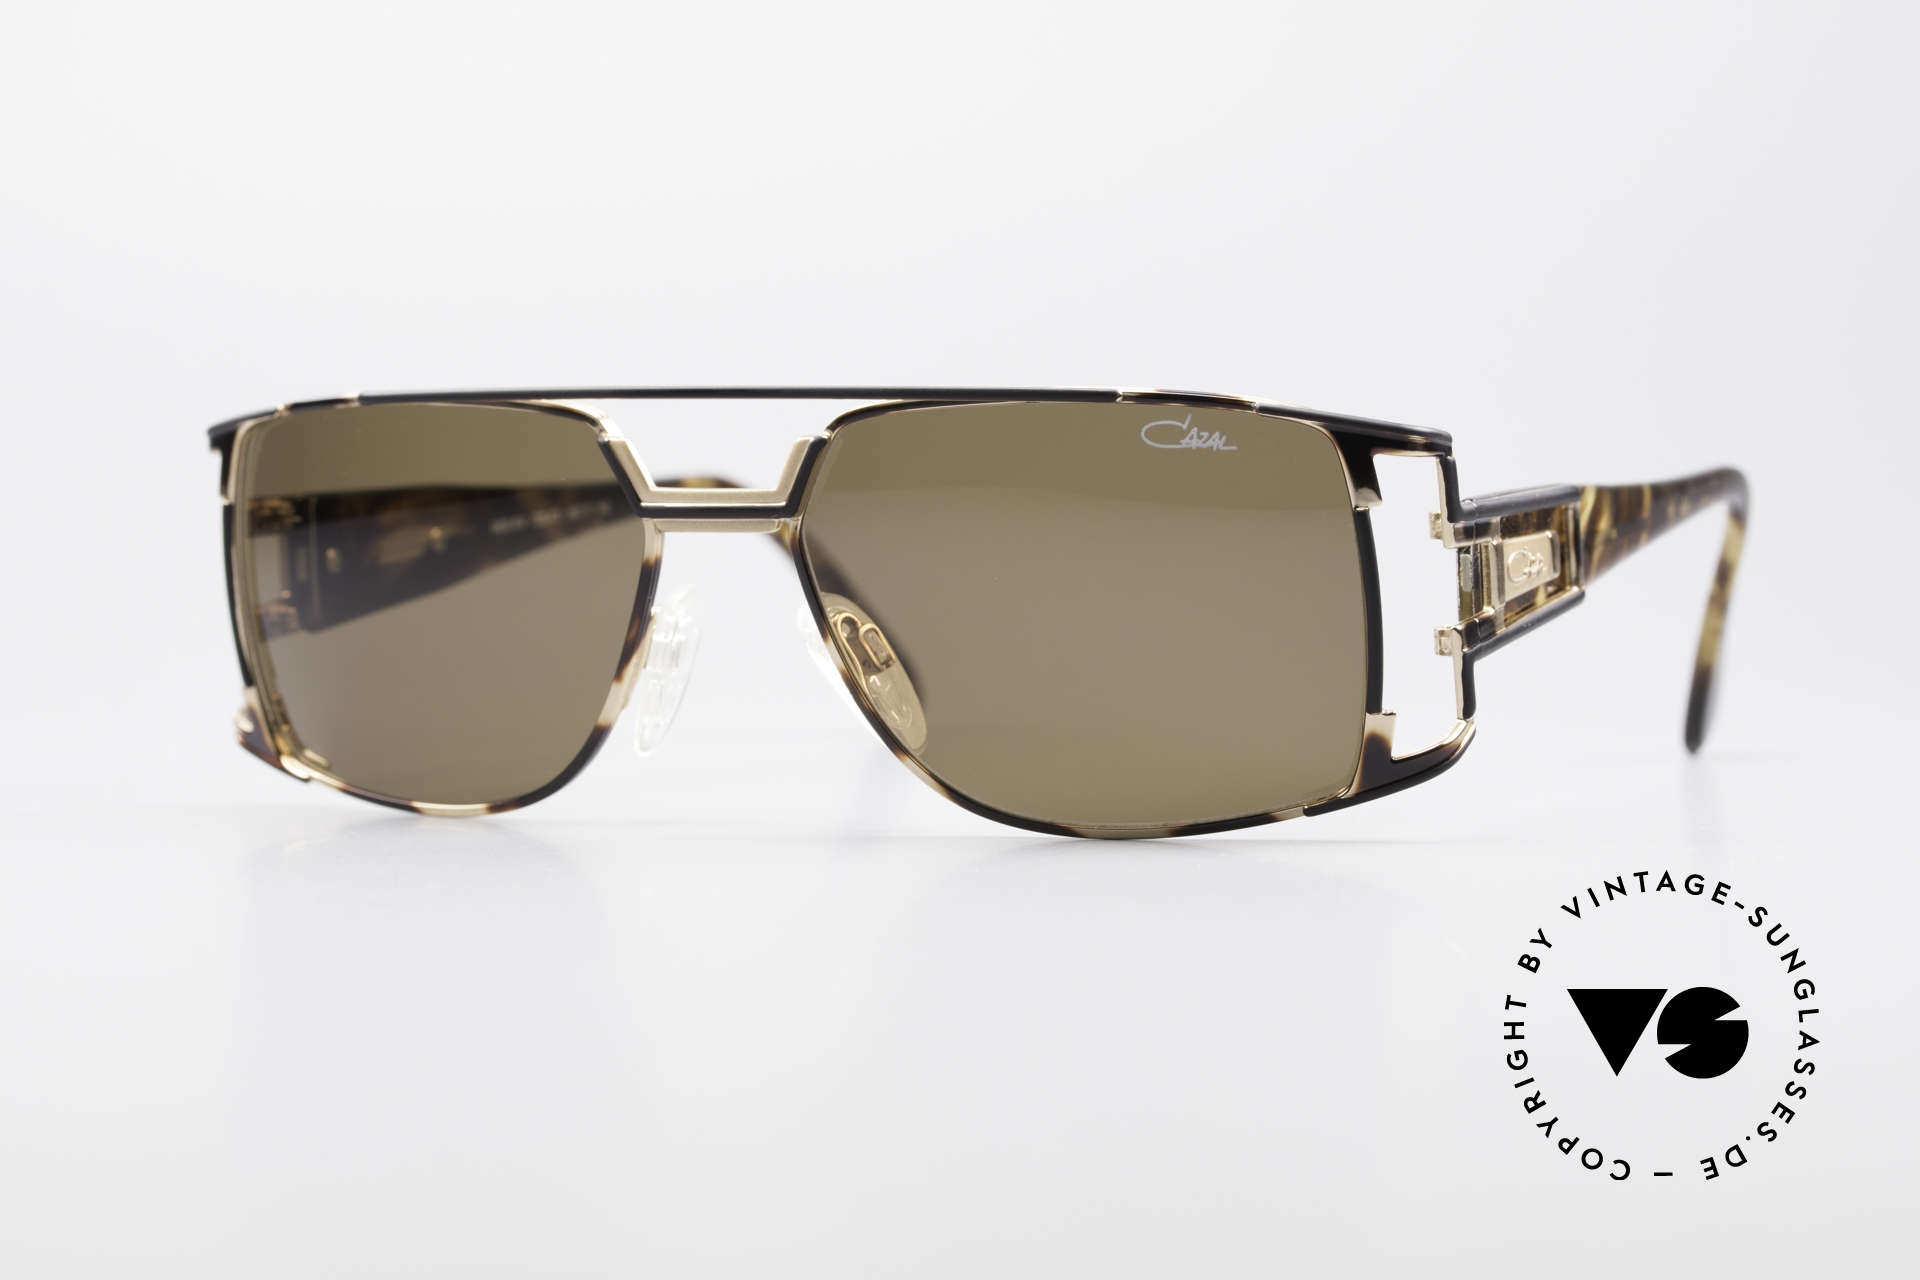 Cazal 974 Designer Shades Ladies Gents, vintage CAZAL unisex designer sunglasses from 1997, Made for Men and Women